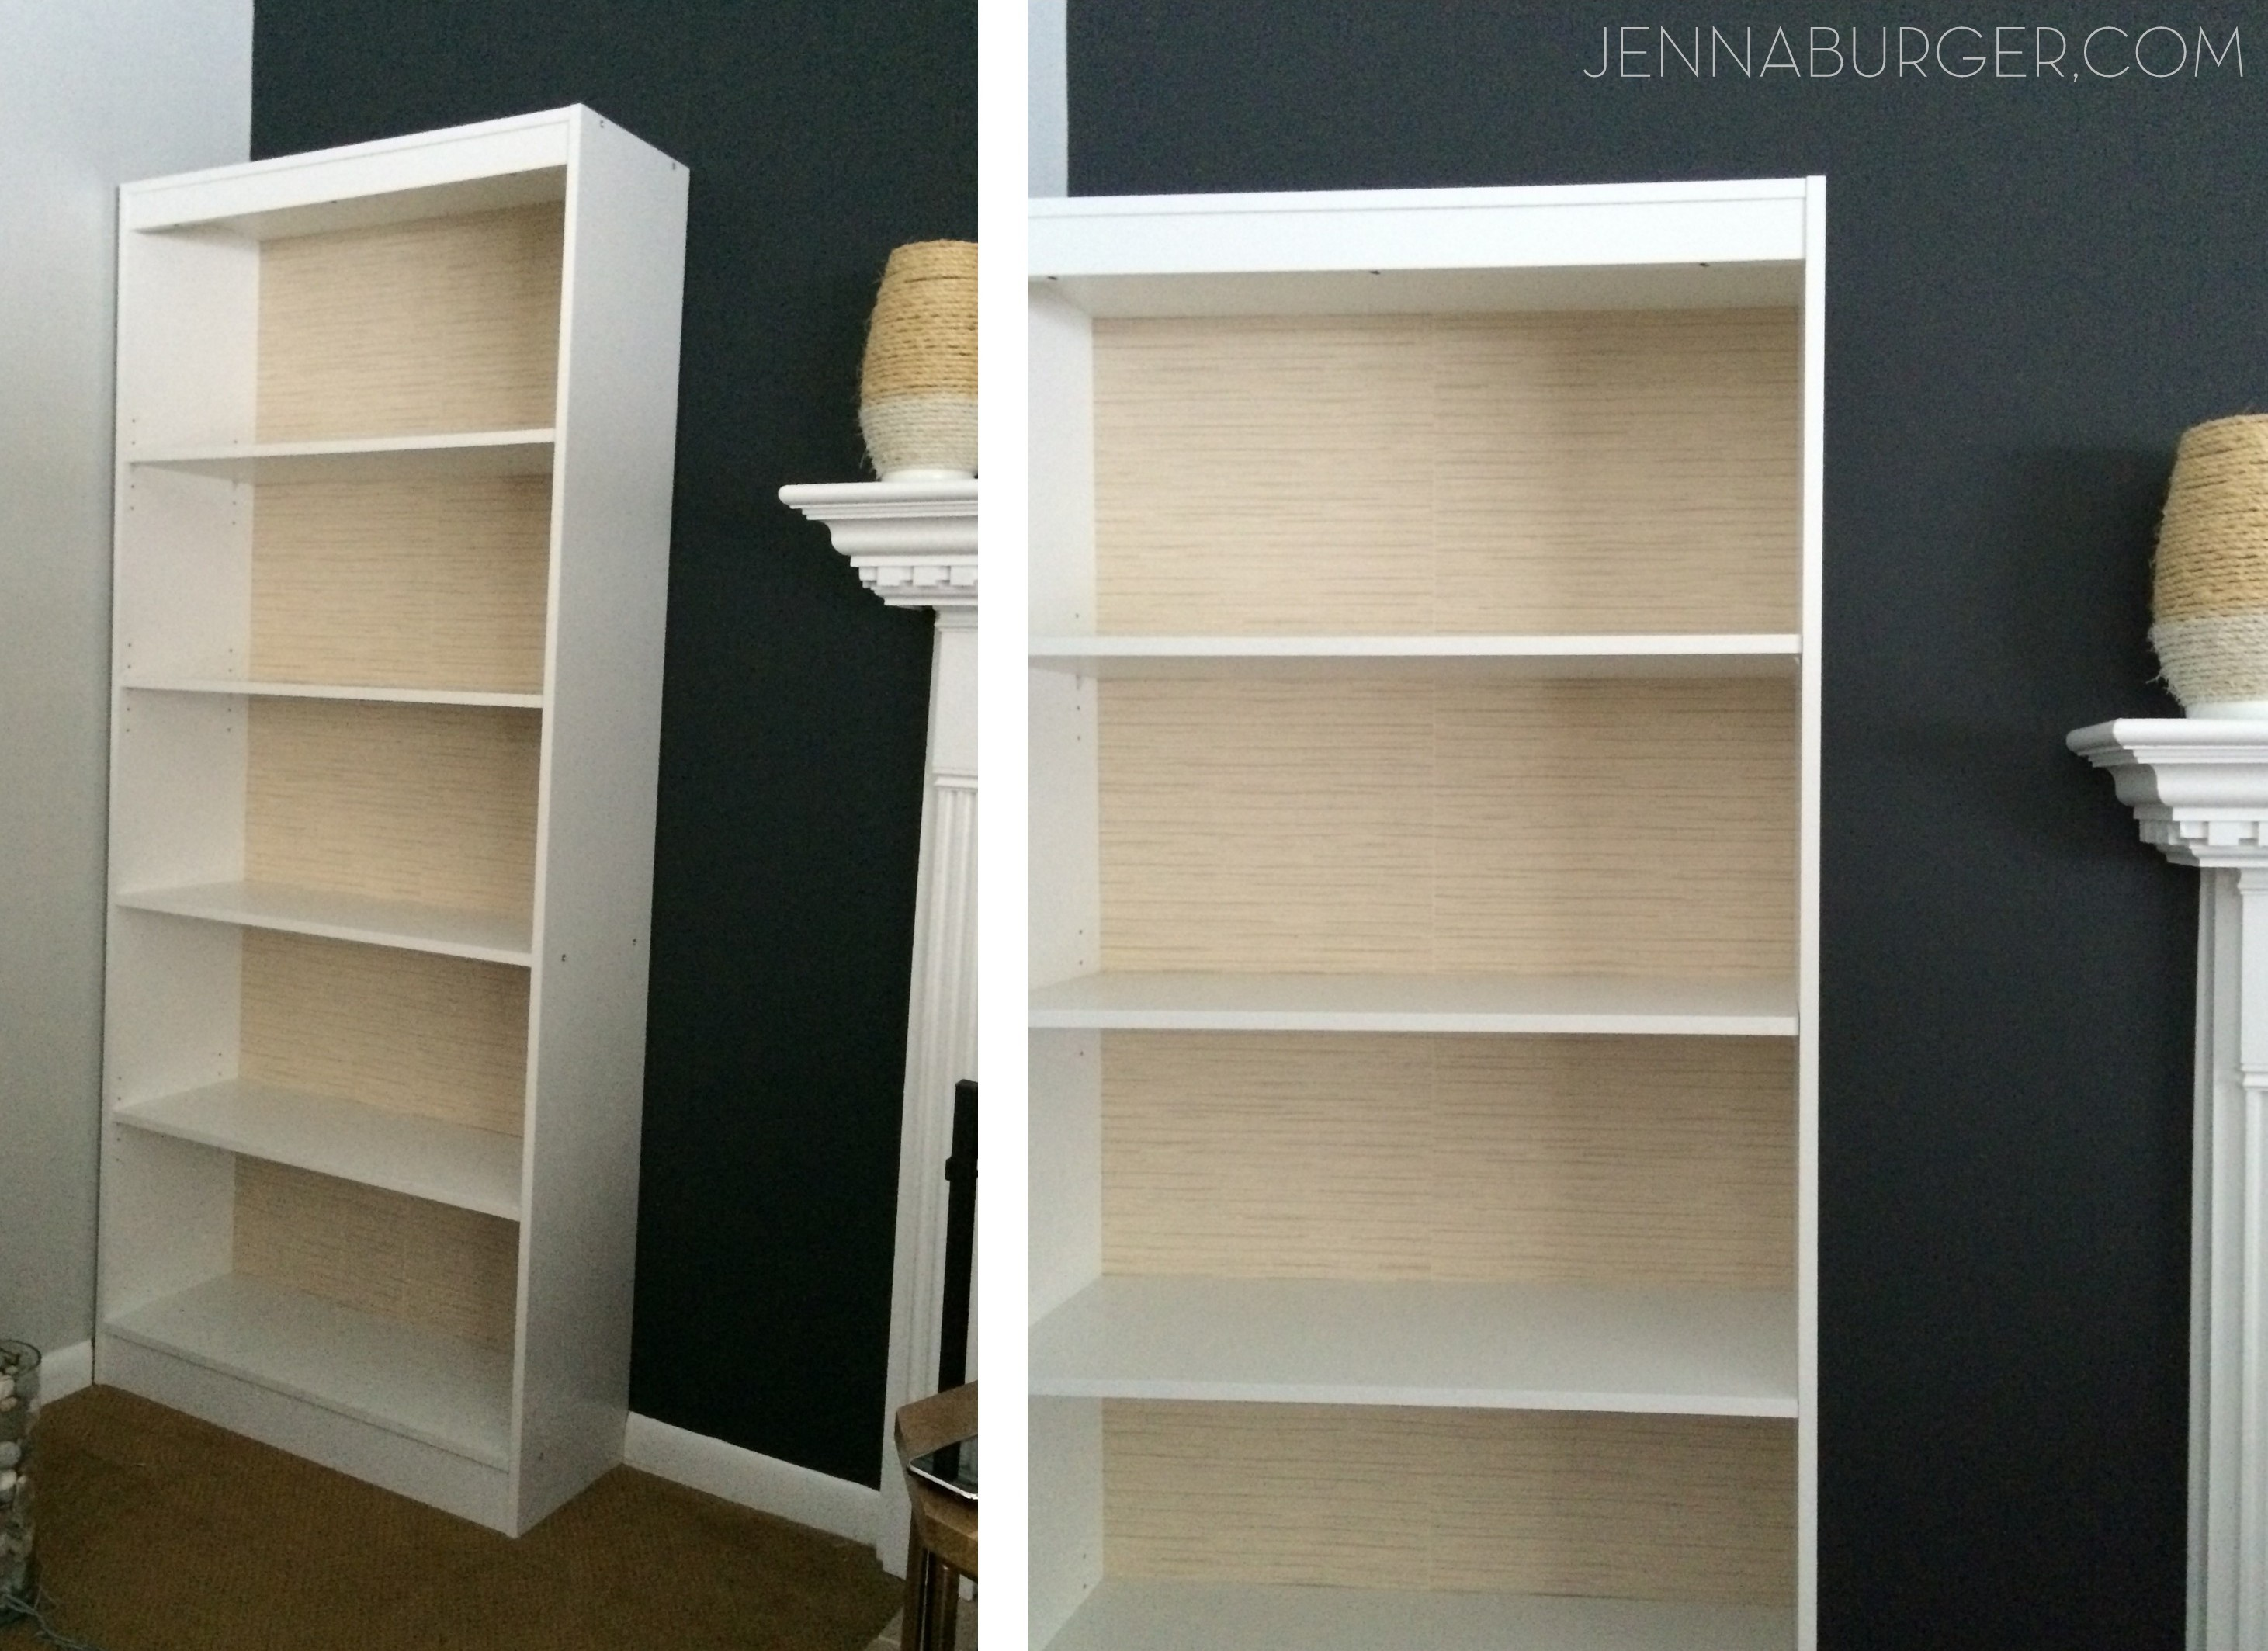 Bookshelves Living Room Set howto make a laminate bookcase look like a builtin bookshelf